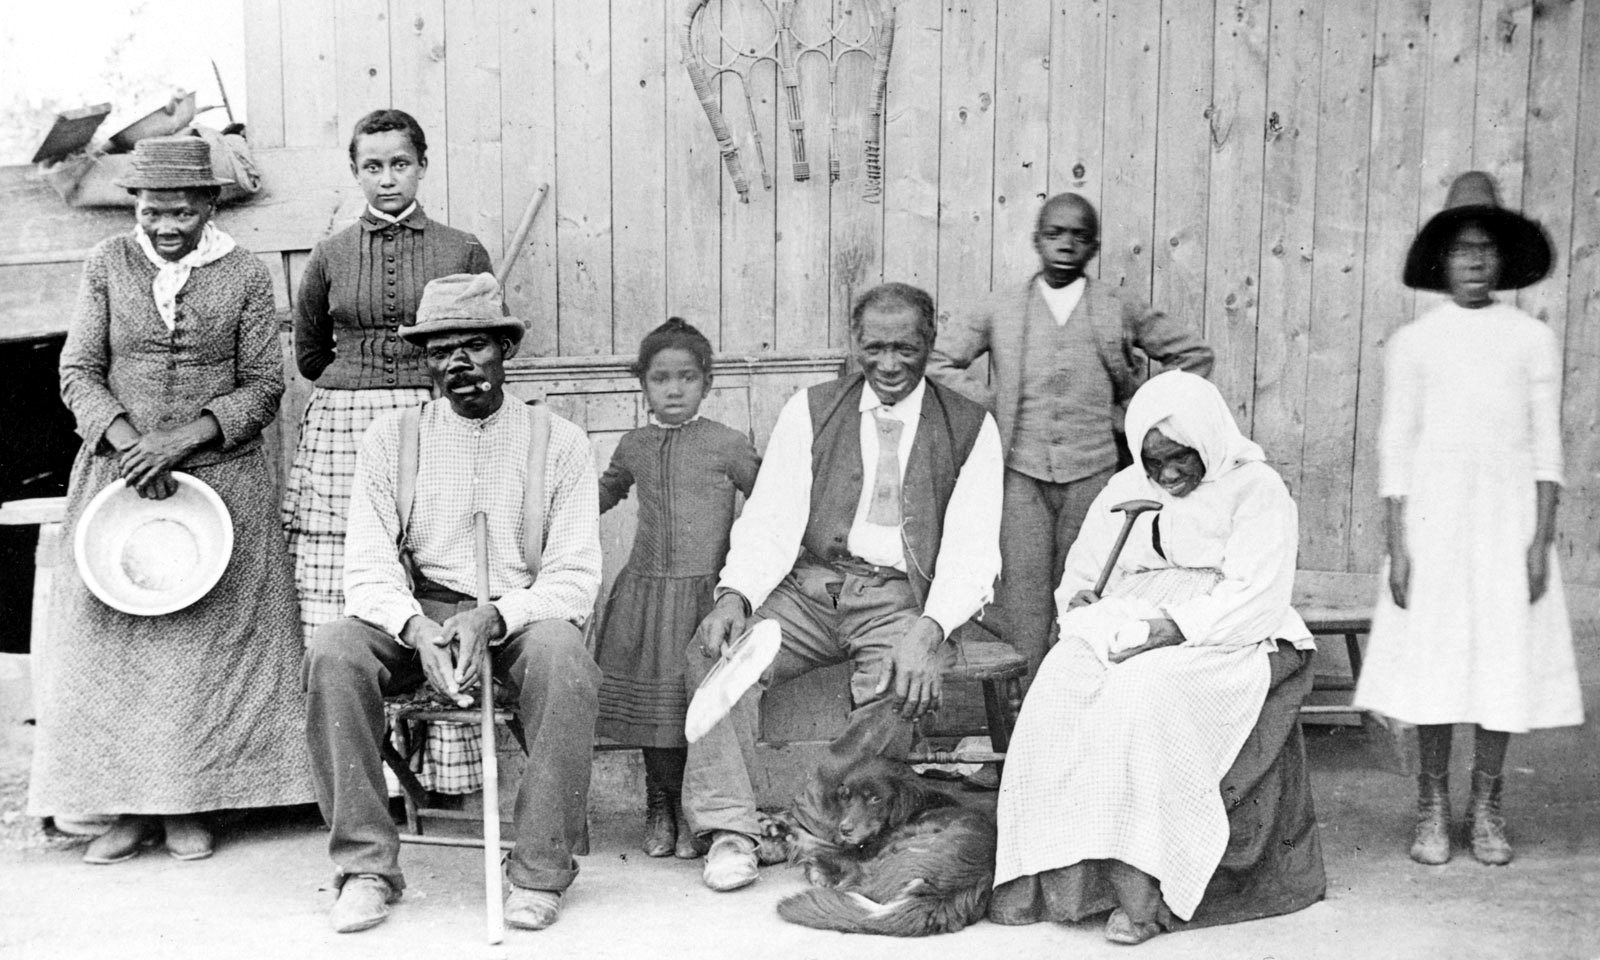 the truth about the underground railroad harriet tubman rescued slaves new york times 1